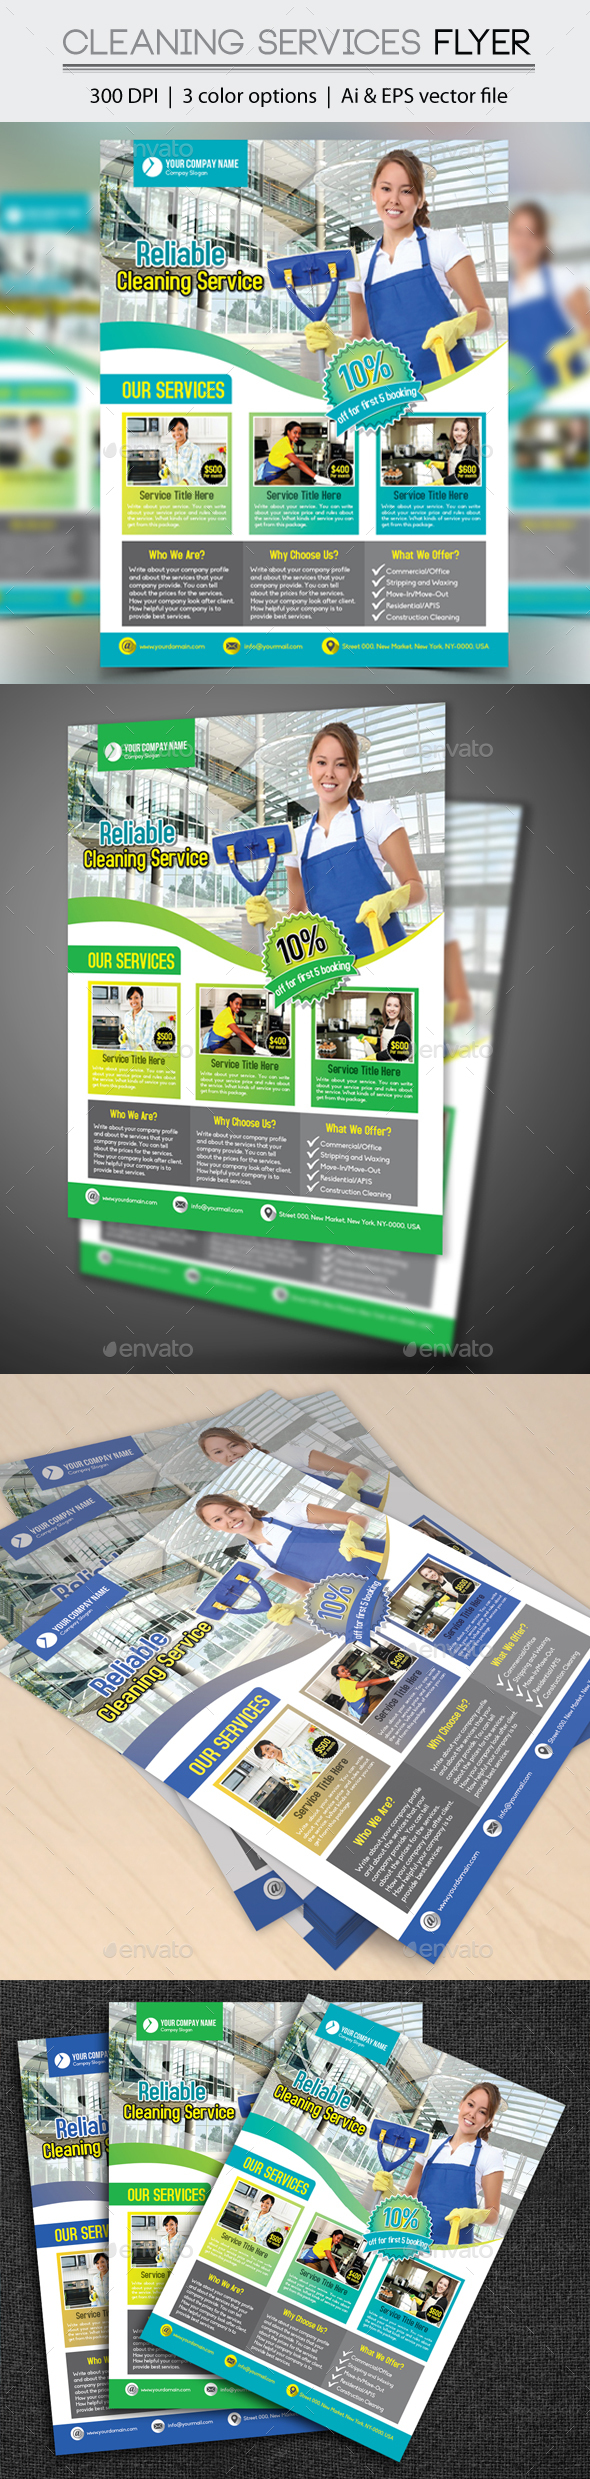 Cleaning Services Flyer - Corporate Flyers